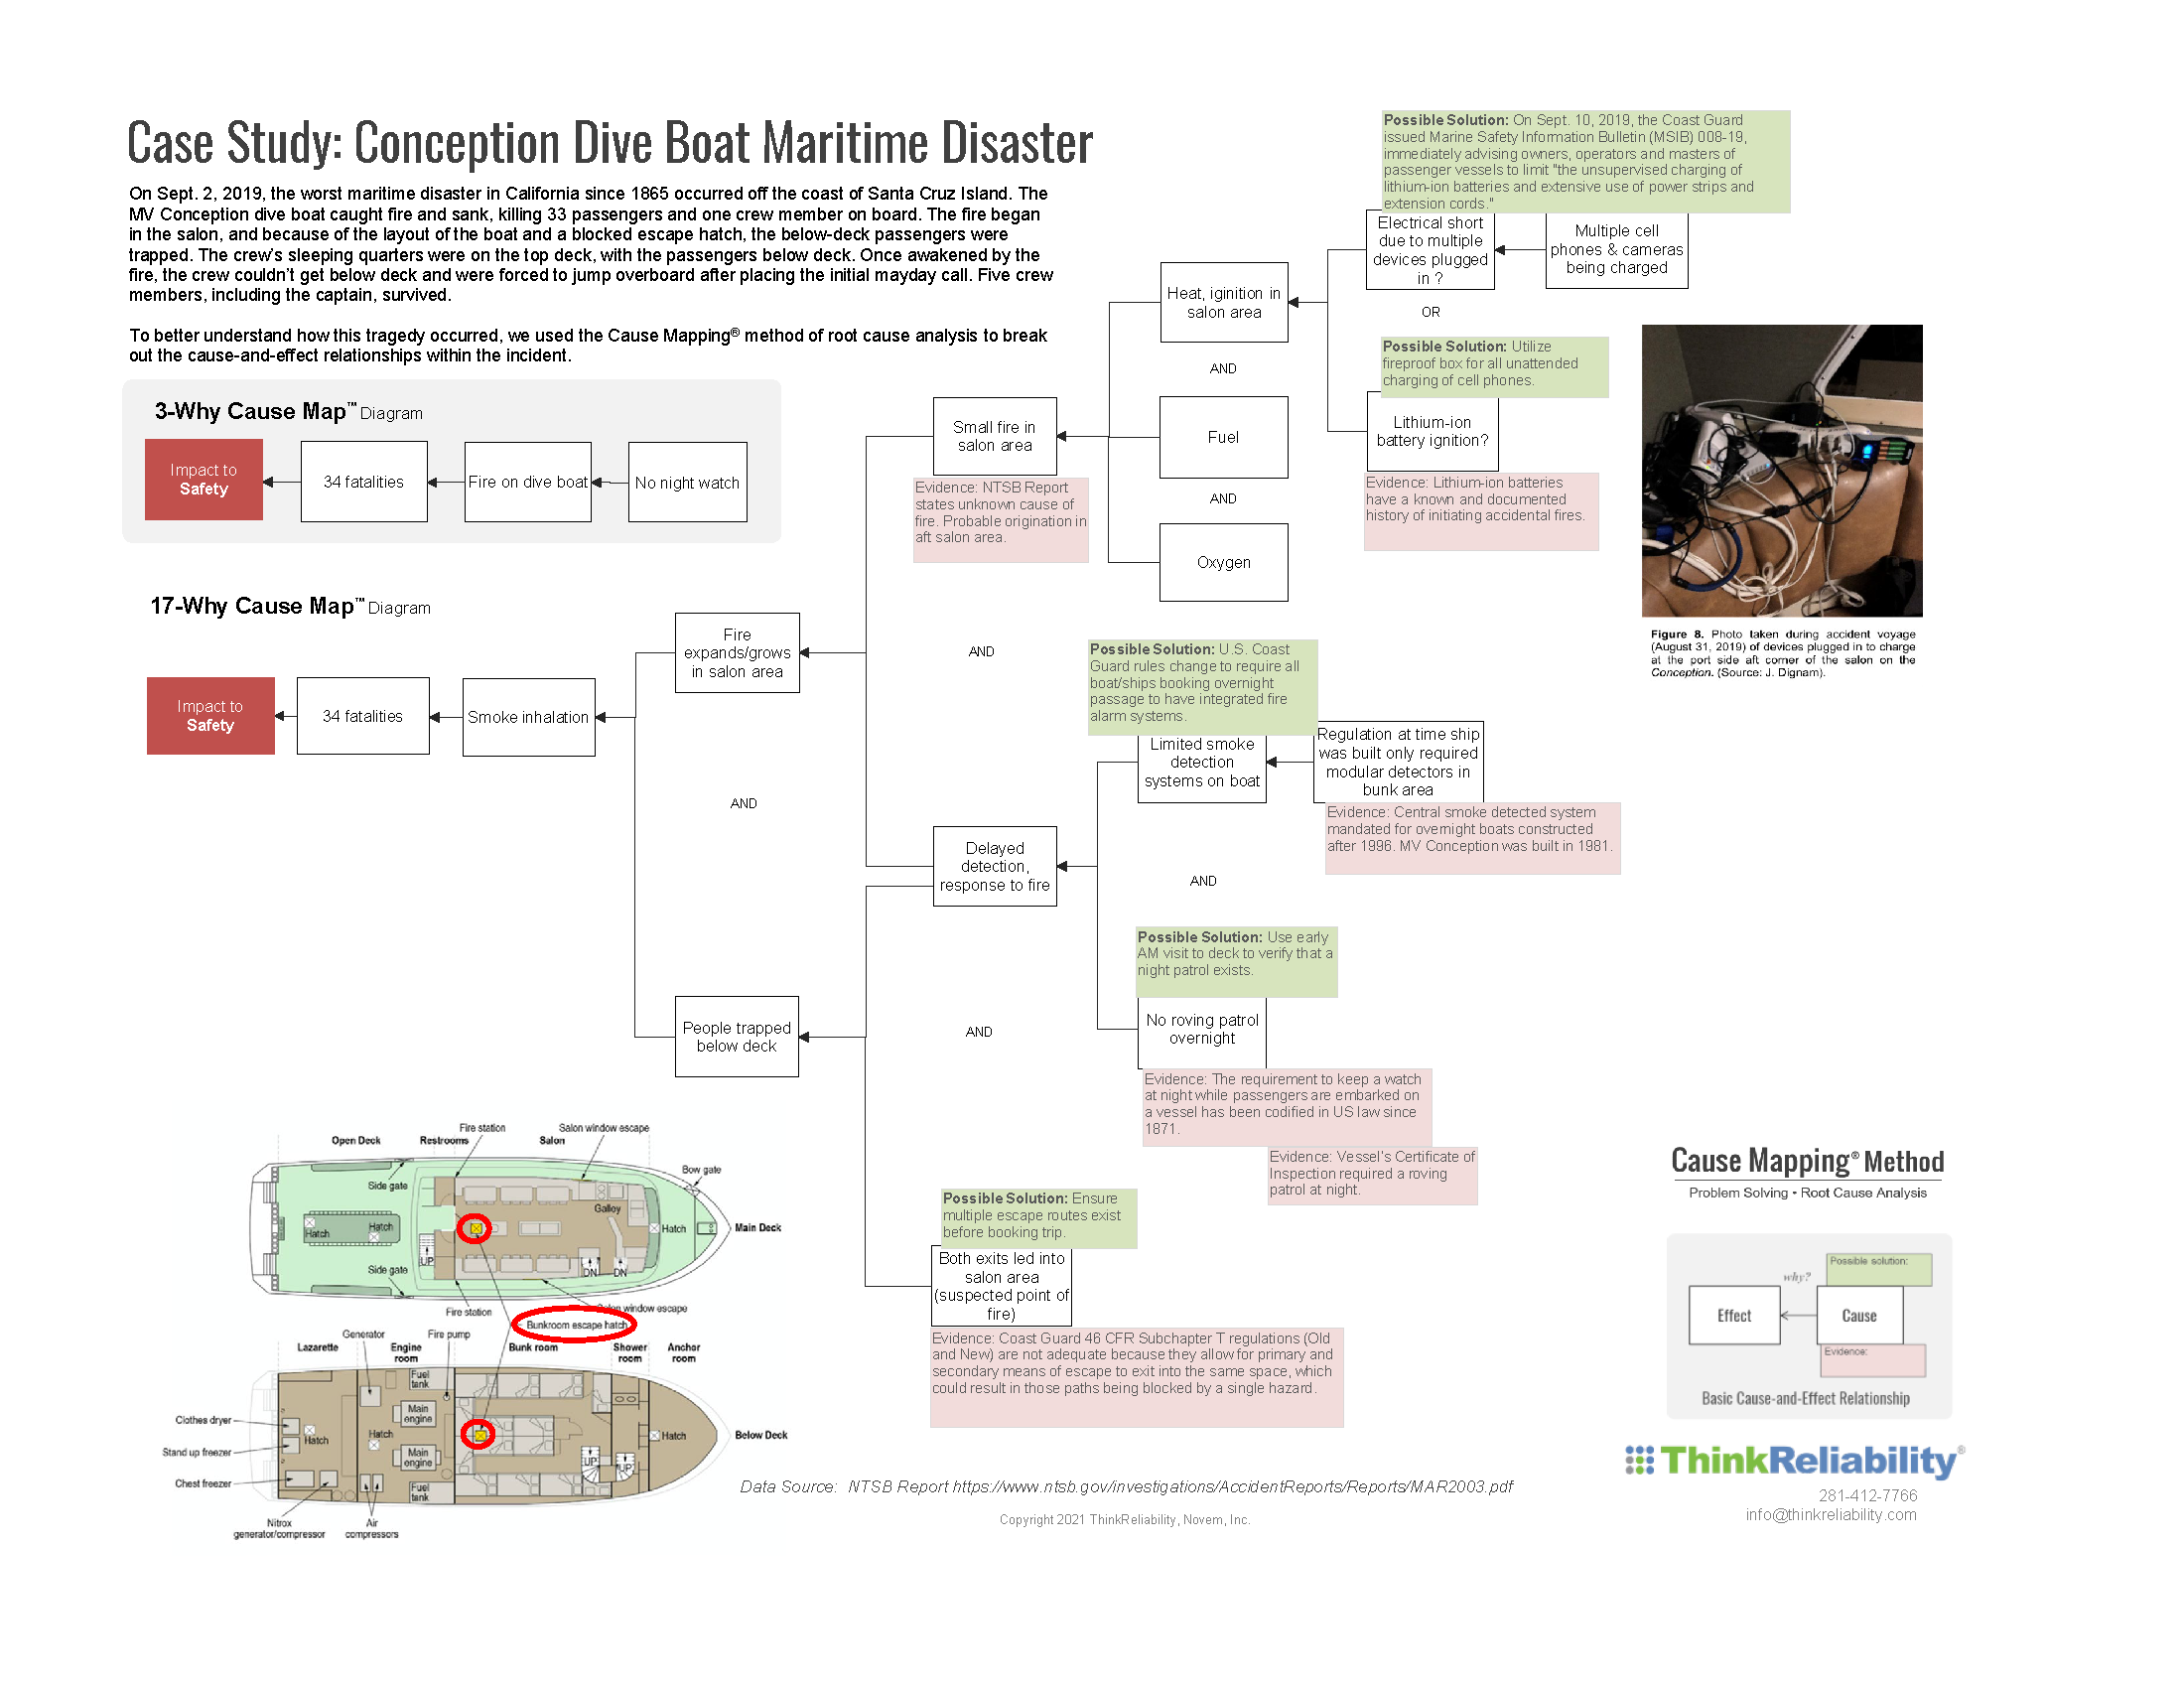 Case Study Conception Dive Boat Maritime Disaster-2